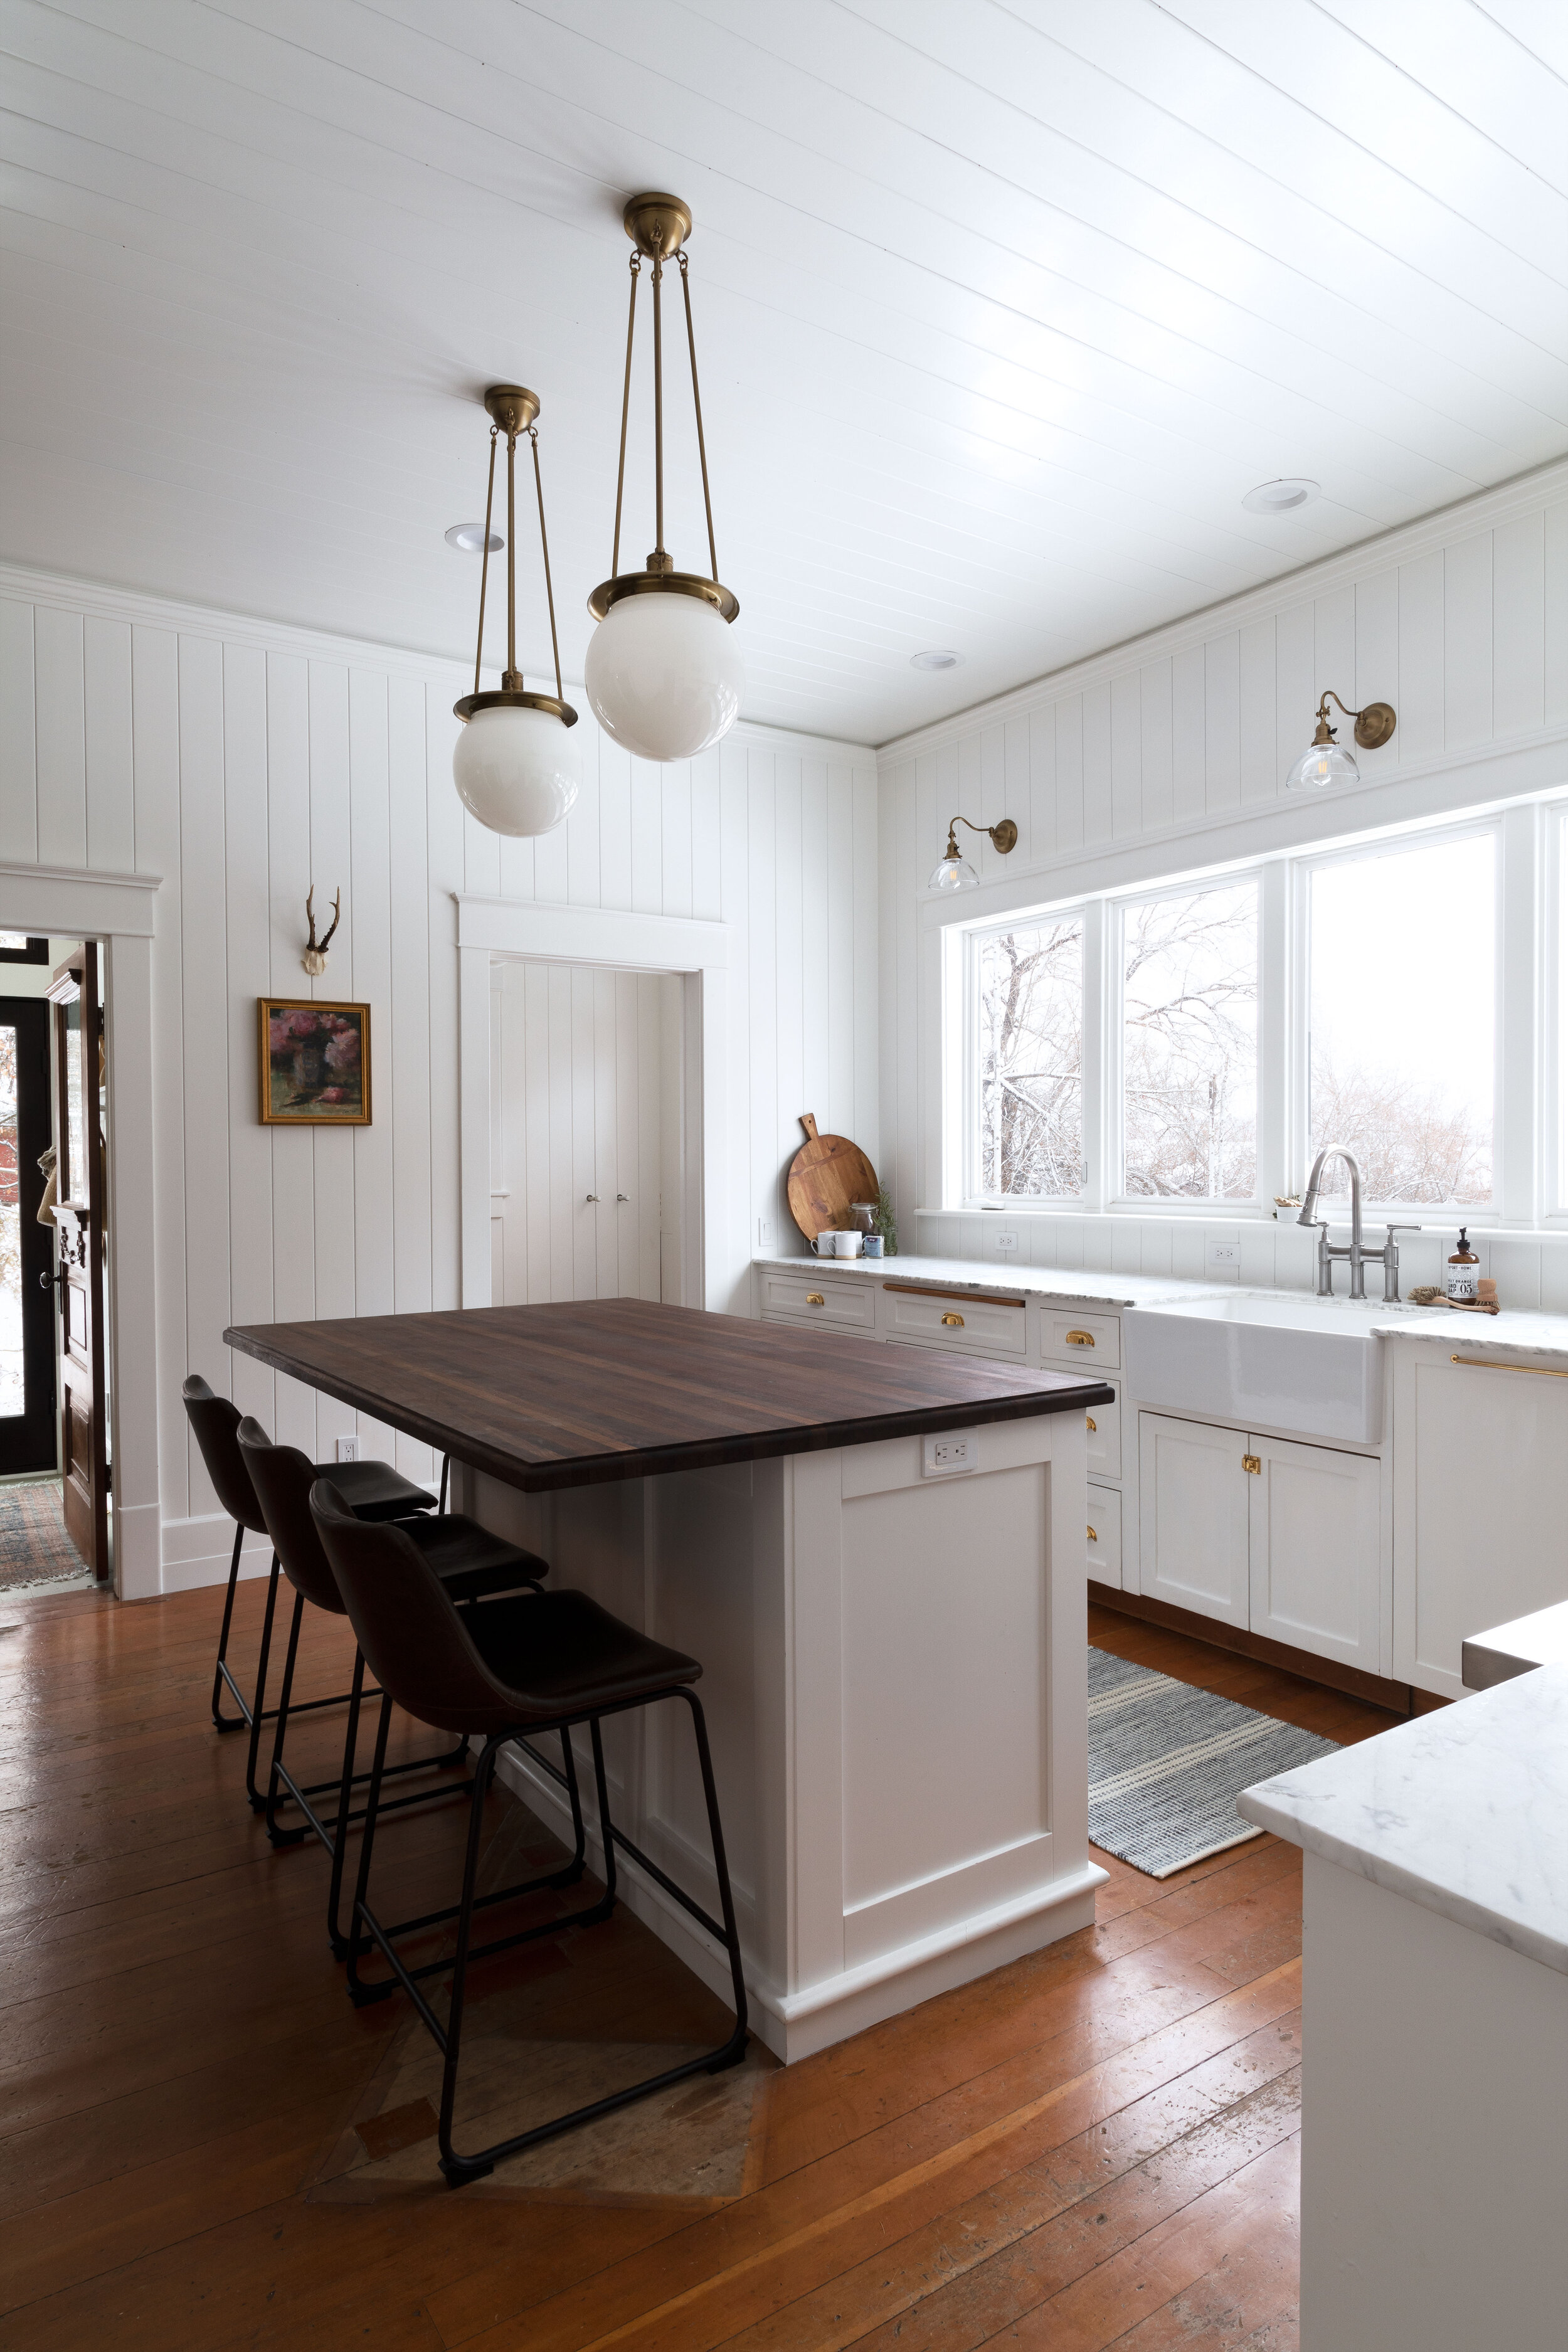 The-Grit-and-Polish---Farmhouse-Country-Kitchen-Reveal-3.0-33.jpg